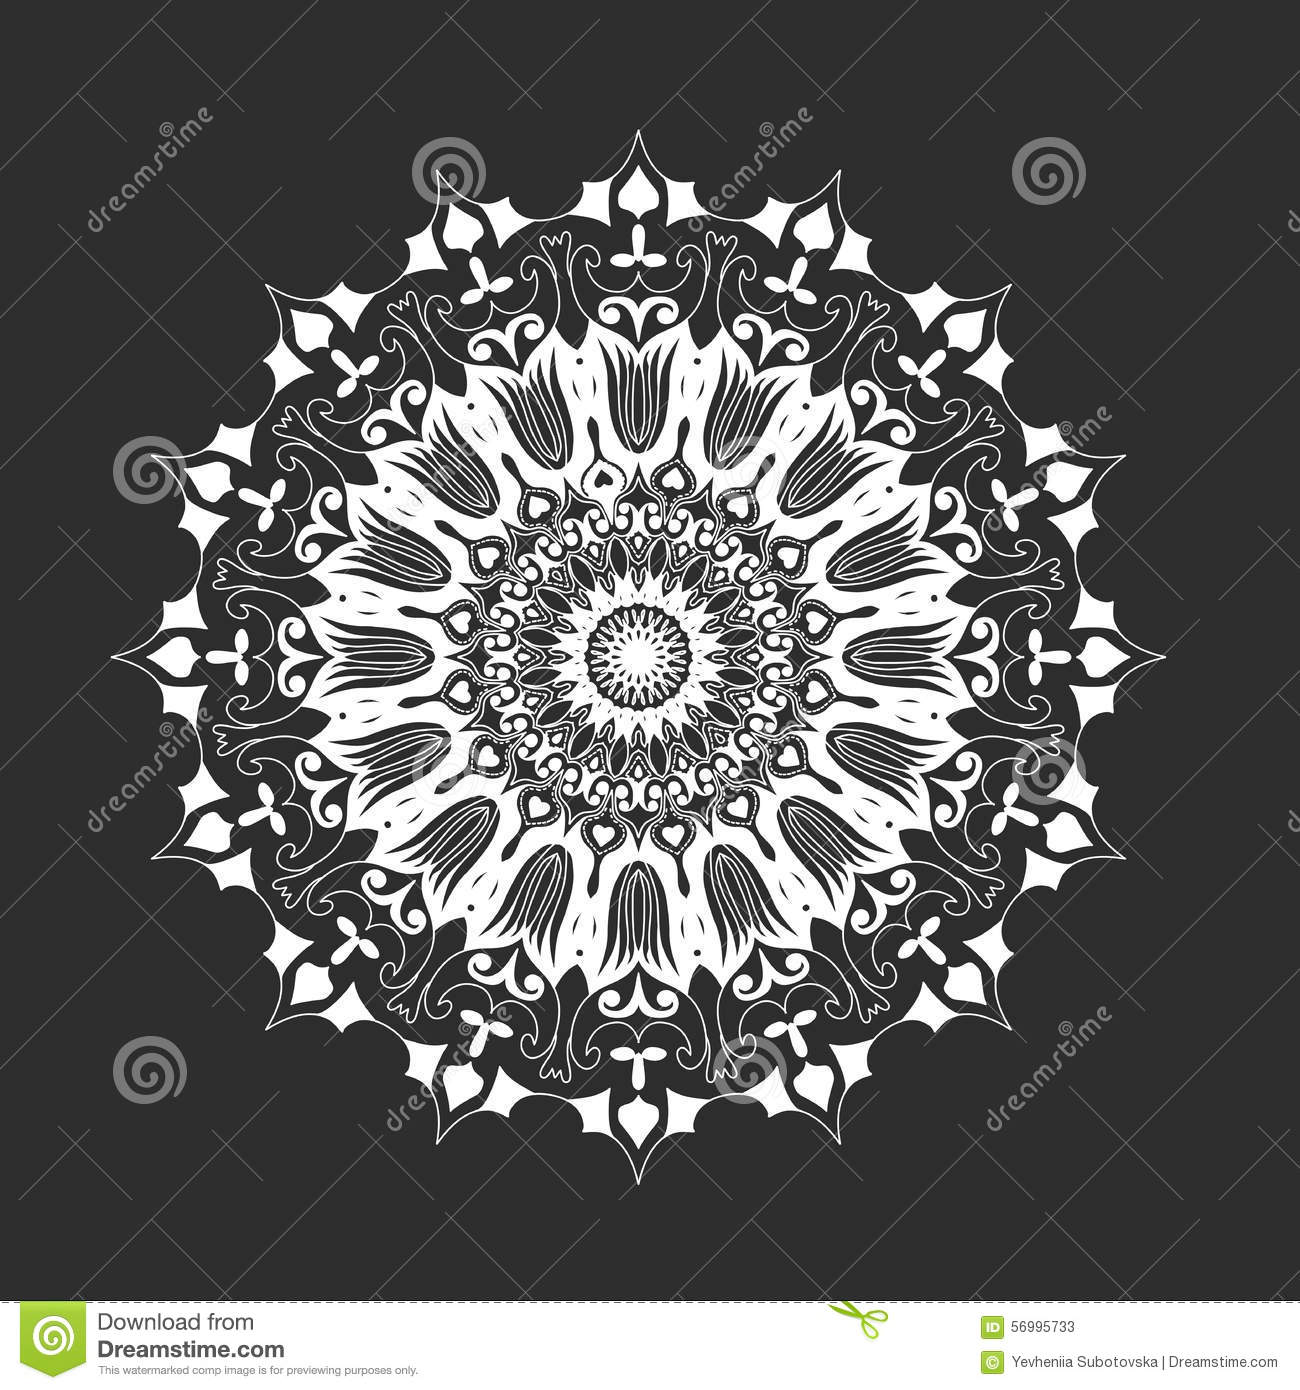 Mandala Wallpaper Iphone 6 Mandala Rond Blanc Sur Le Fond Noir Abstrait Illustration